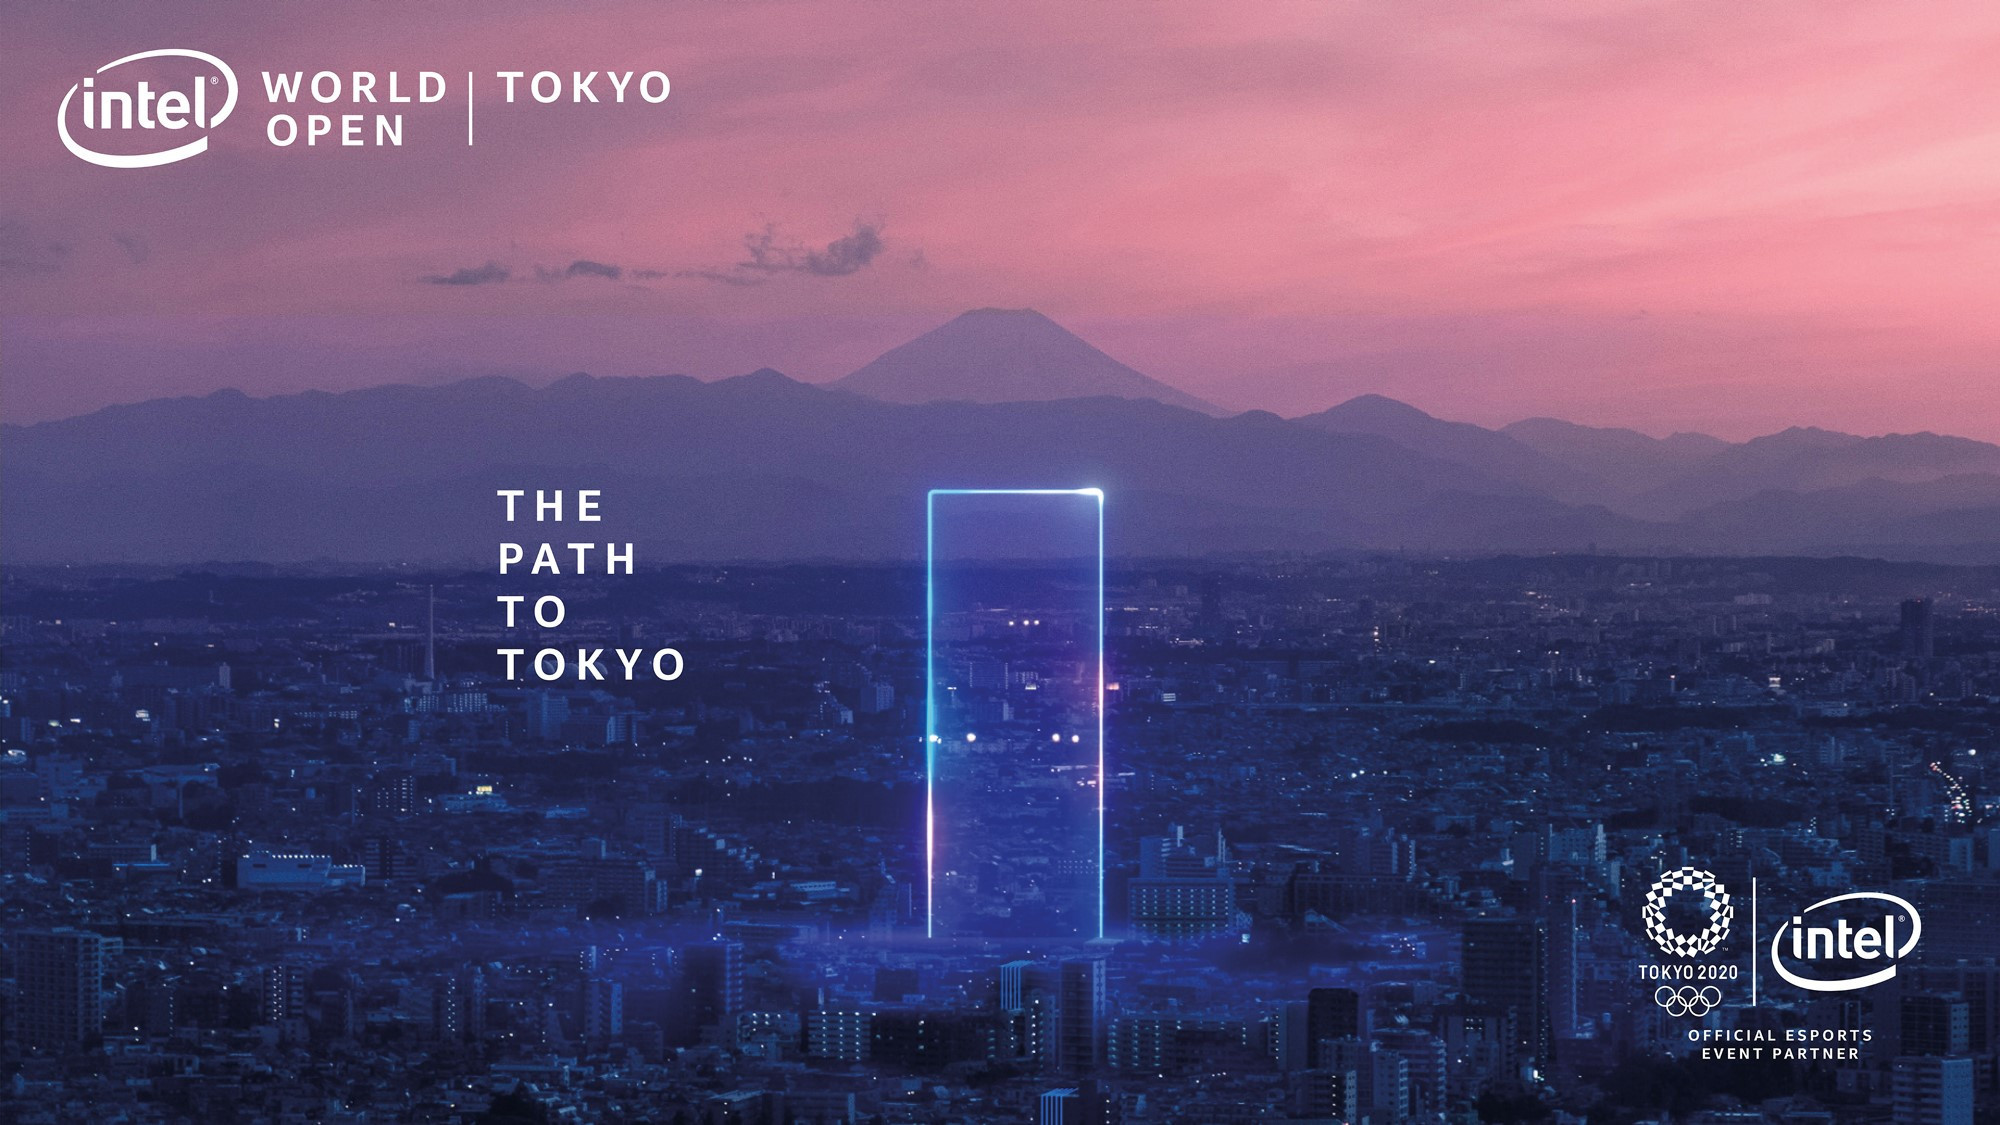 The Intel World Open is due to take place in Tokyo this year, despite the postponement of the Olympic Games ©Intel